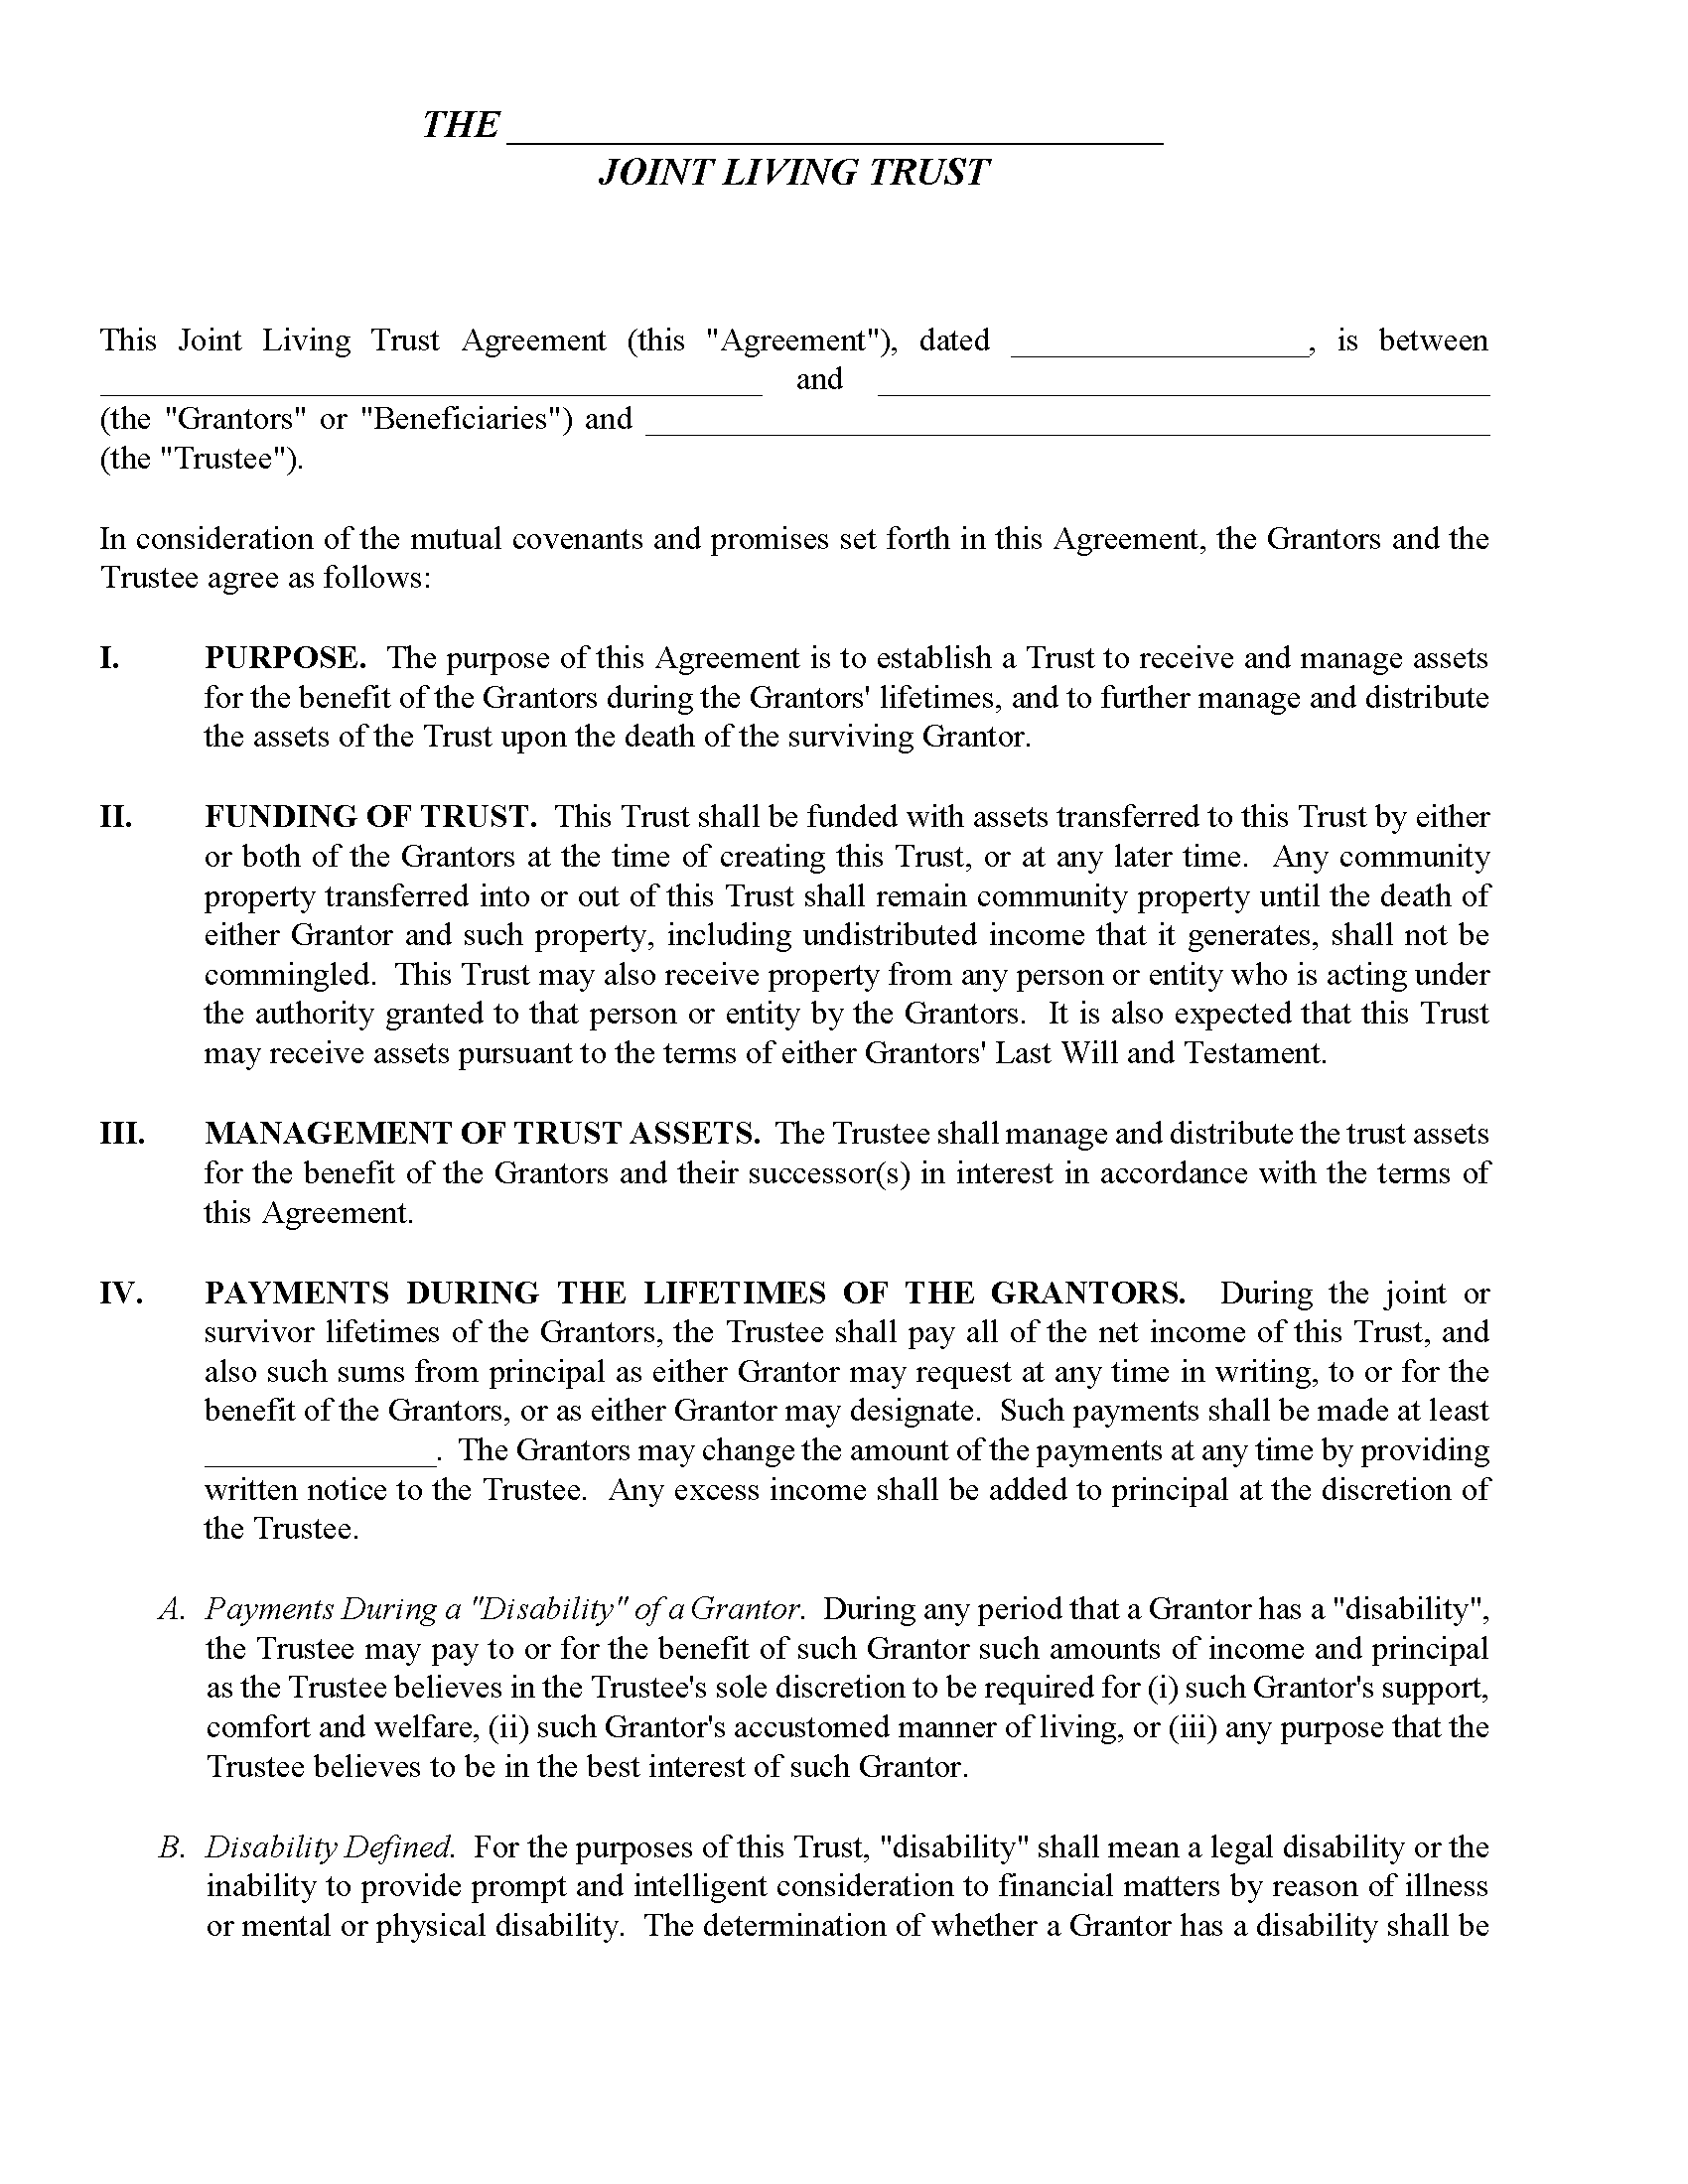 Texas Joint Living Trust Form